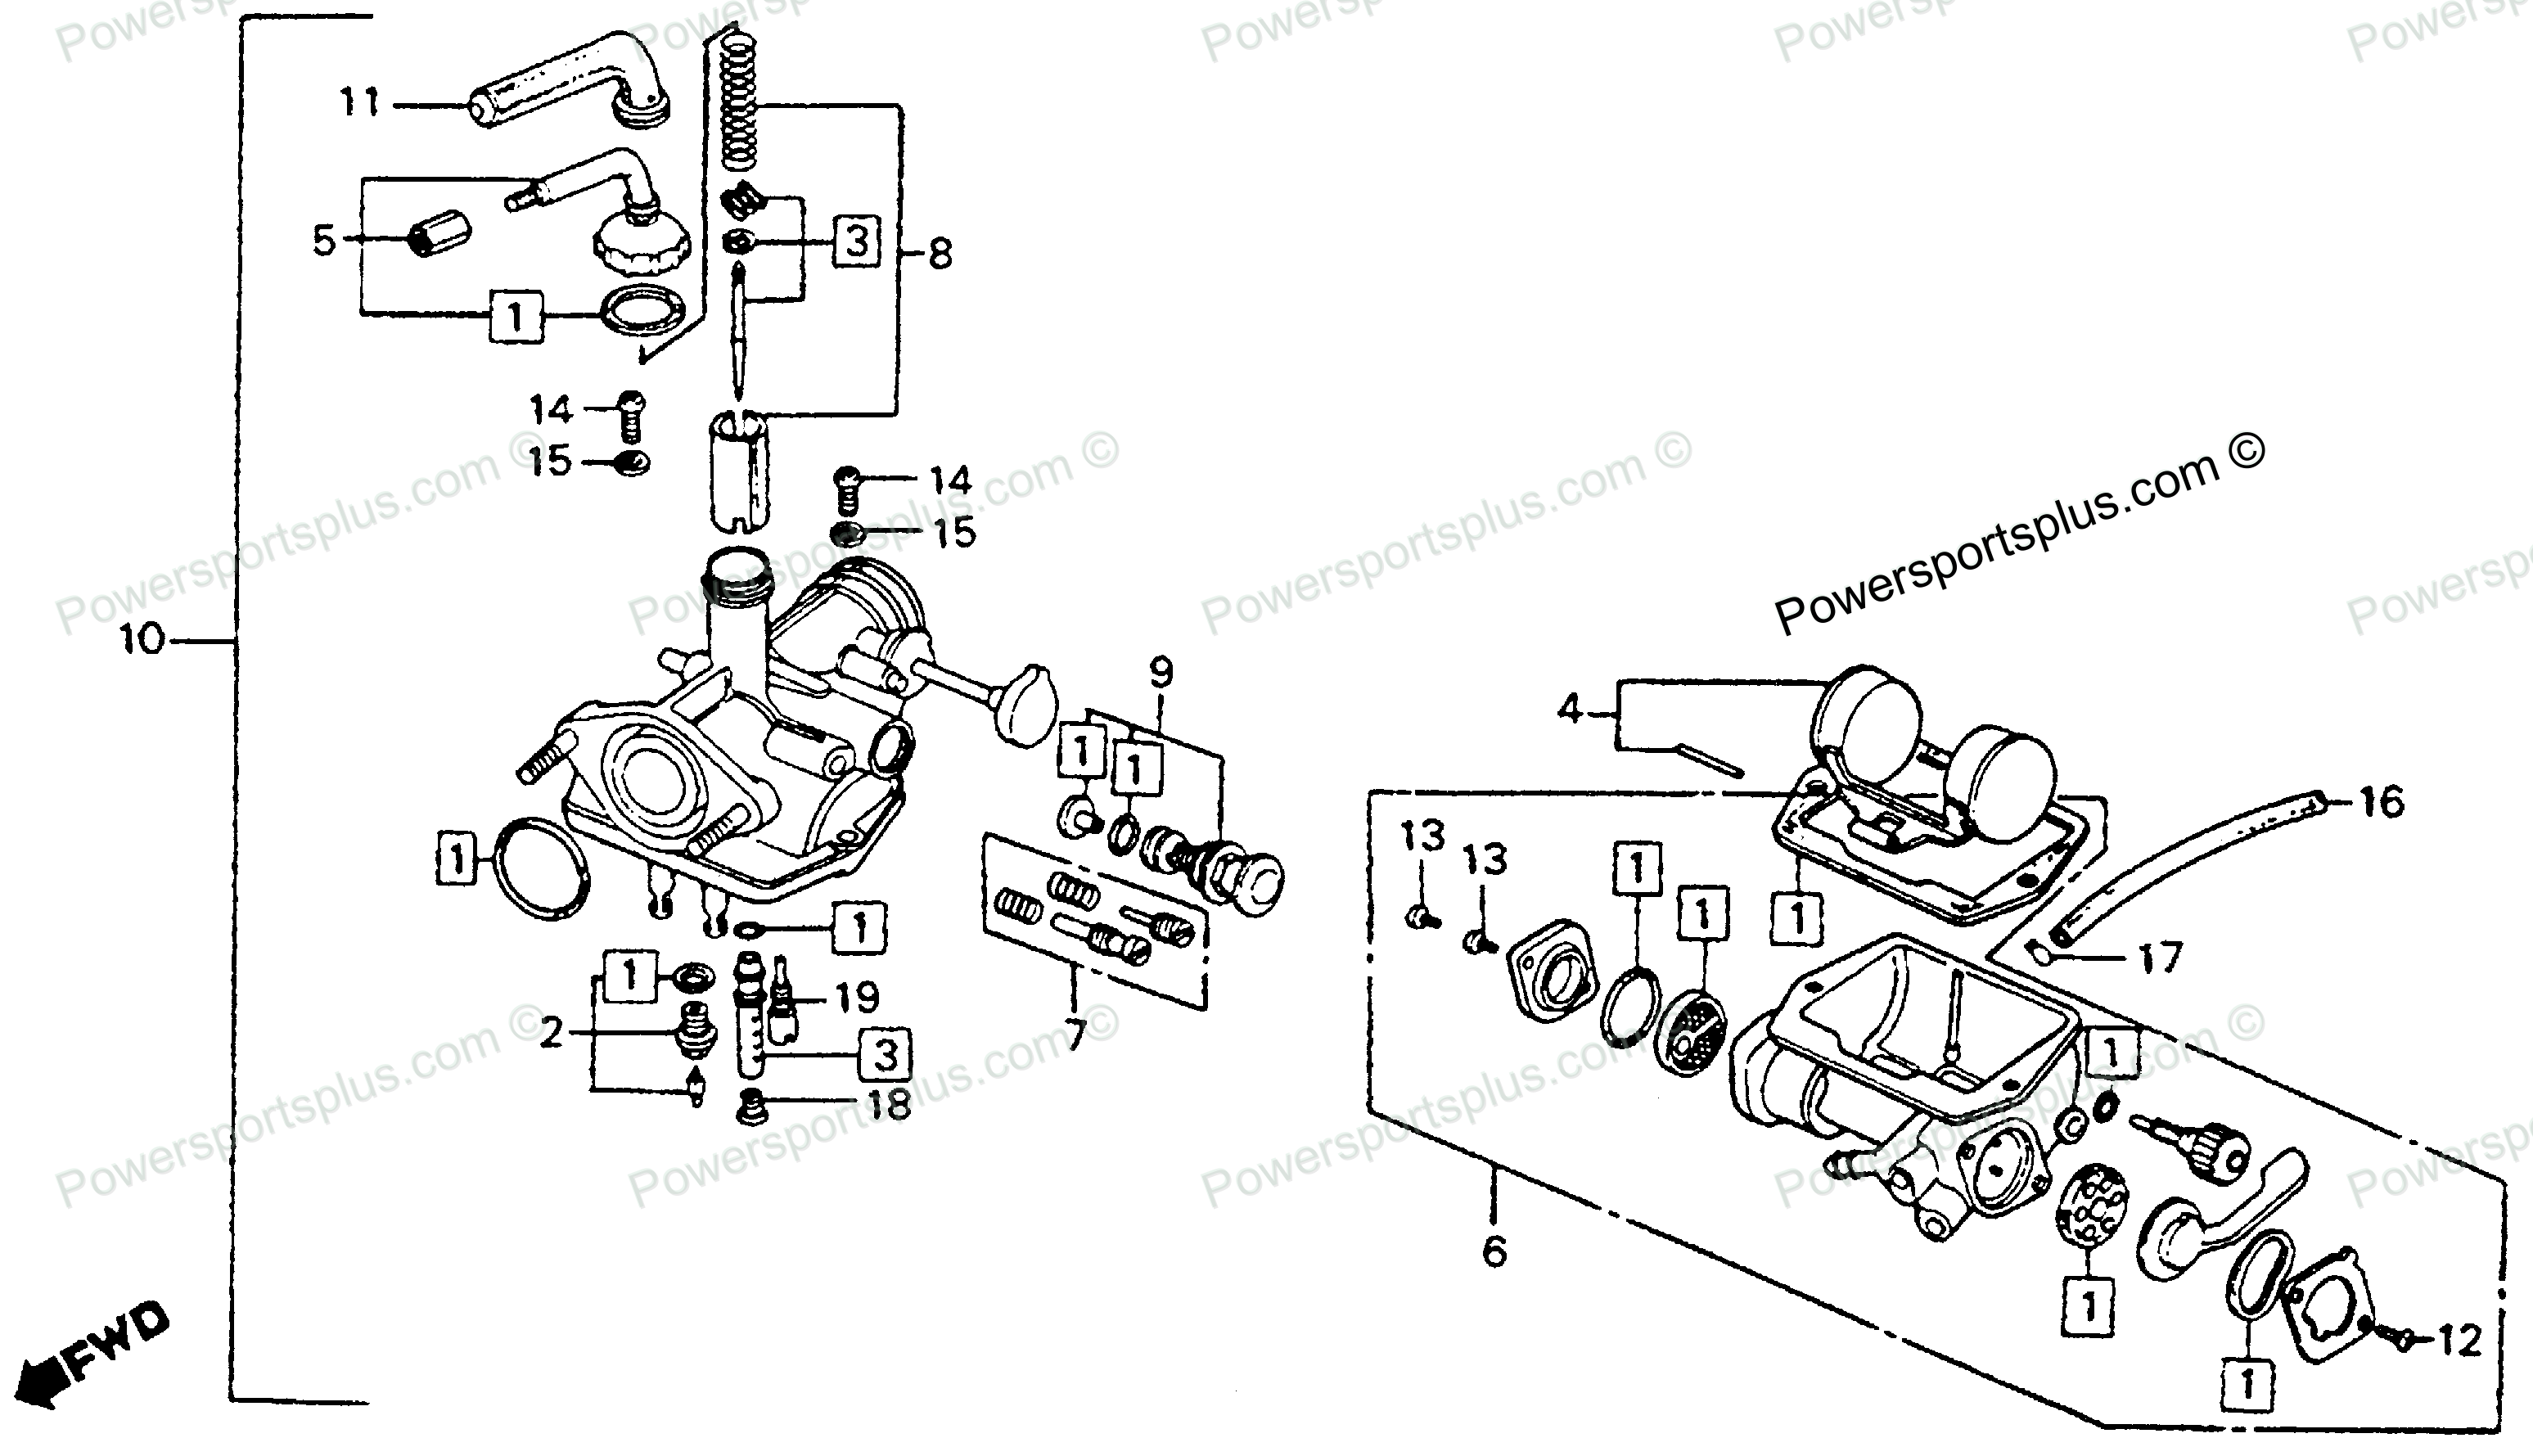 0efb18283ae24d7a2627632be070cf5c diagram of honda motorcycle parts 1976 ct90 a carburetor k6 77 honda trail 90 wiring diagram at eliteediting.co